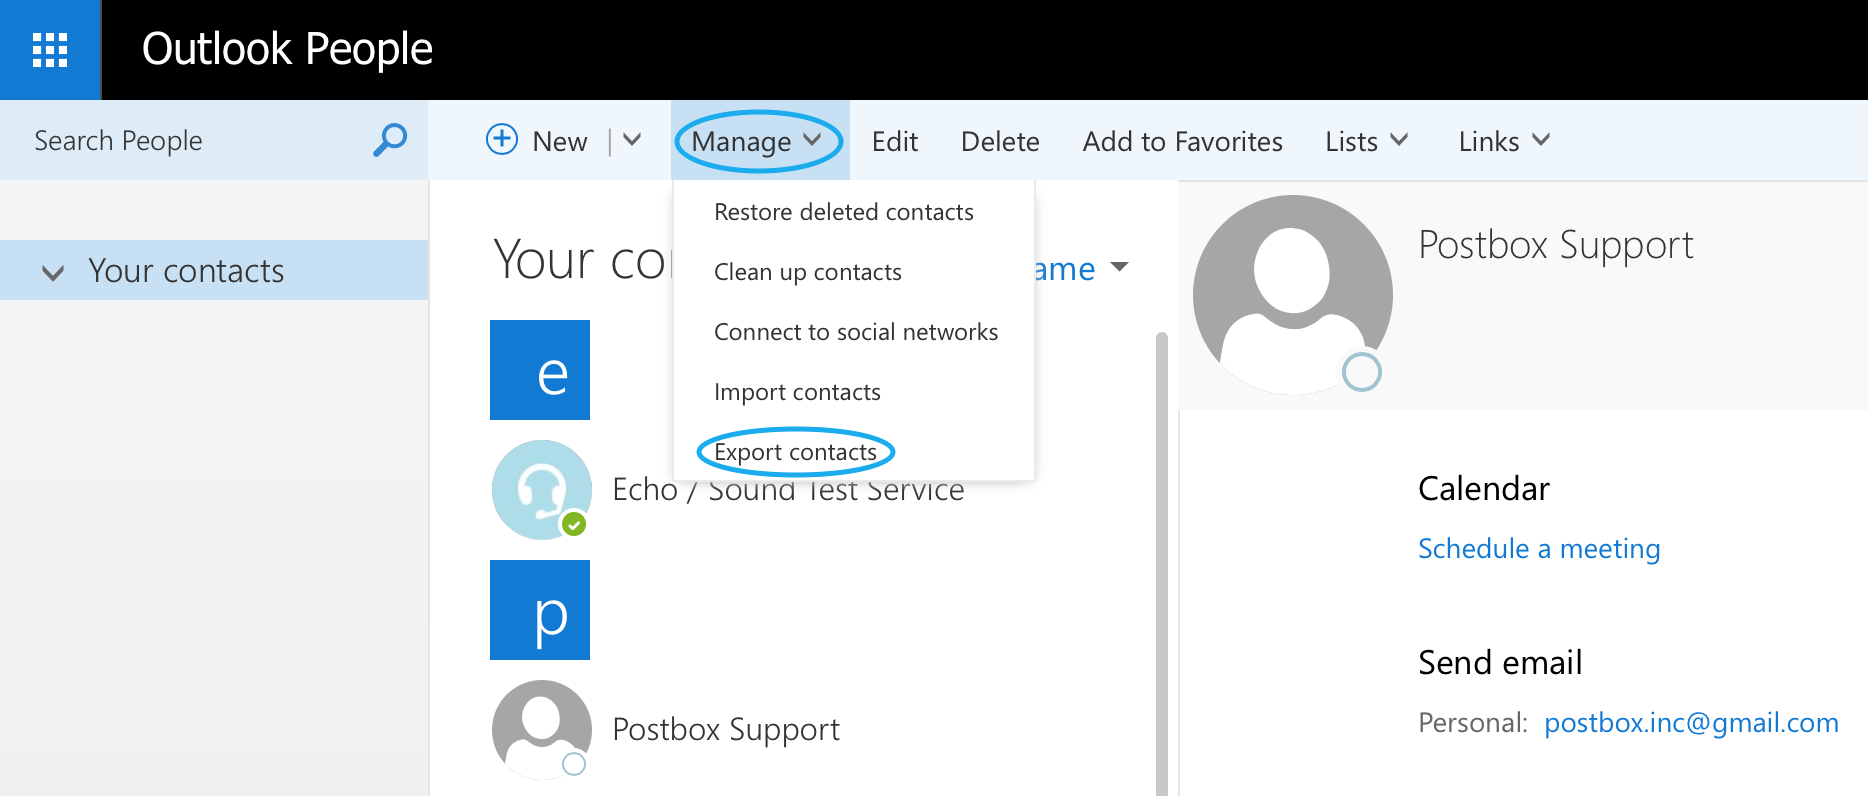 Importing Contacts from the Windows 8 People App or from